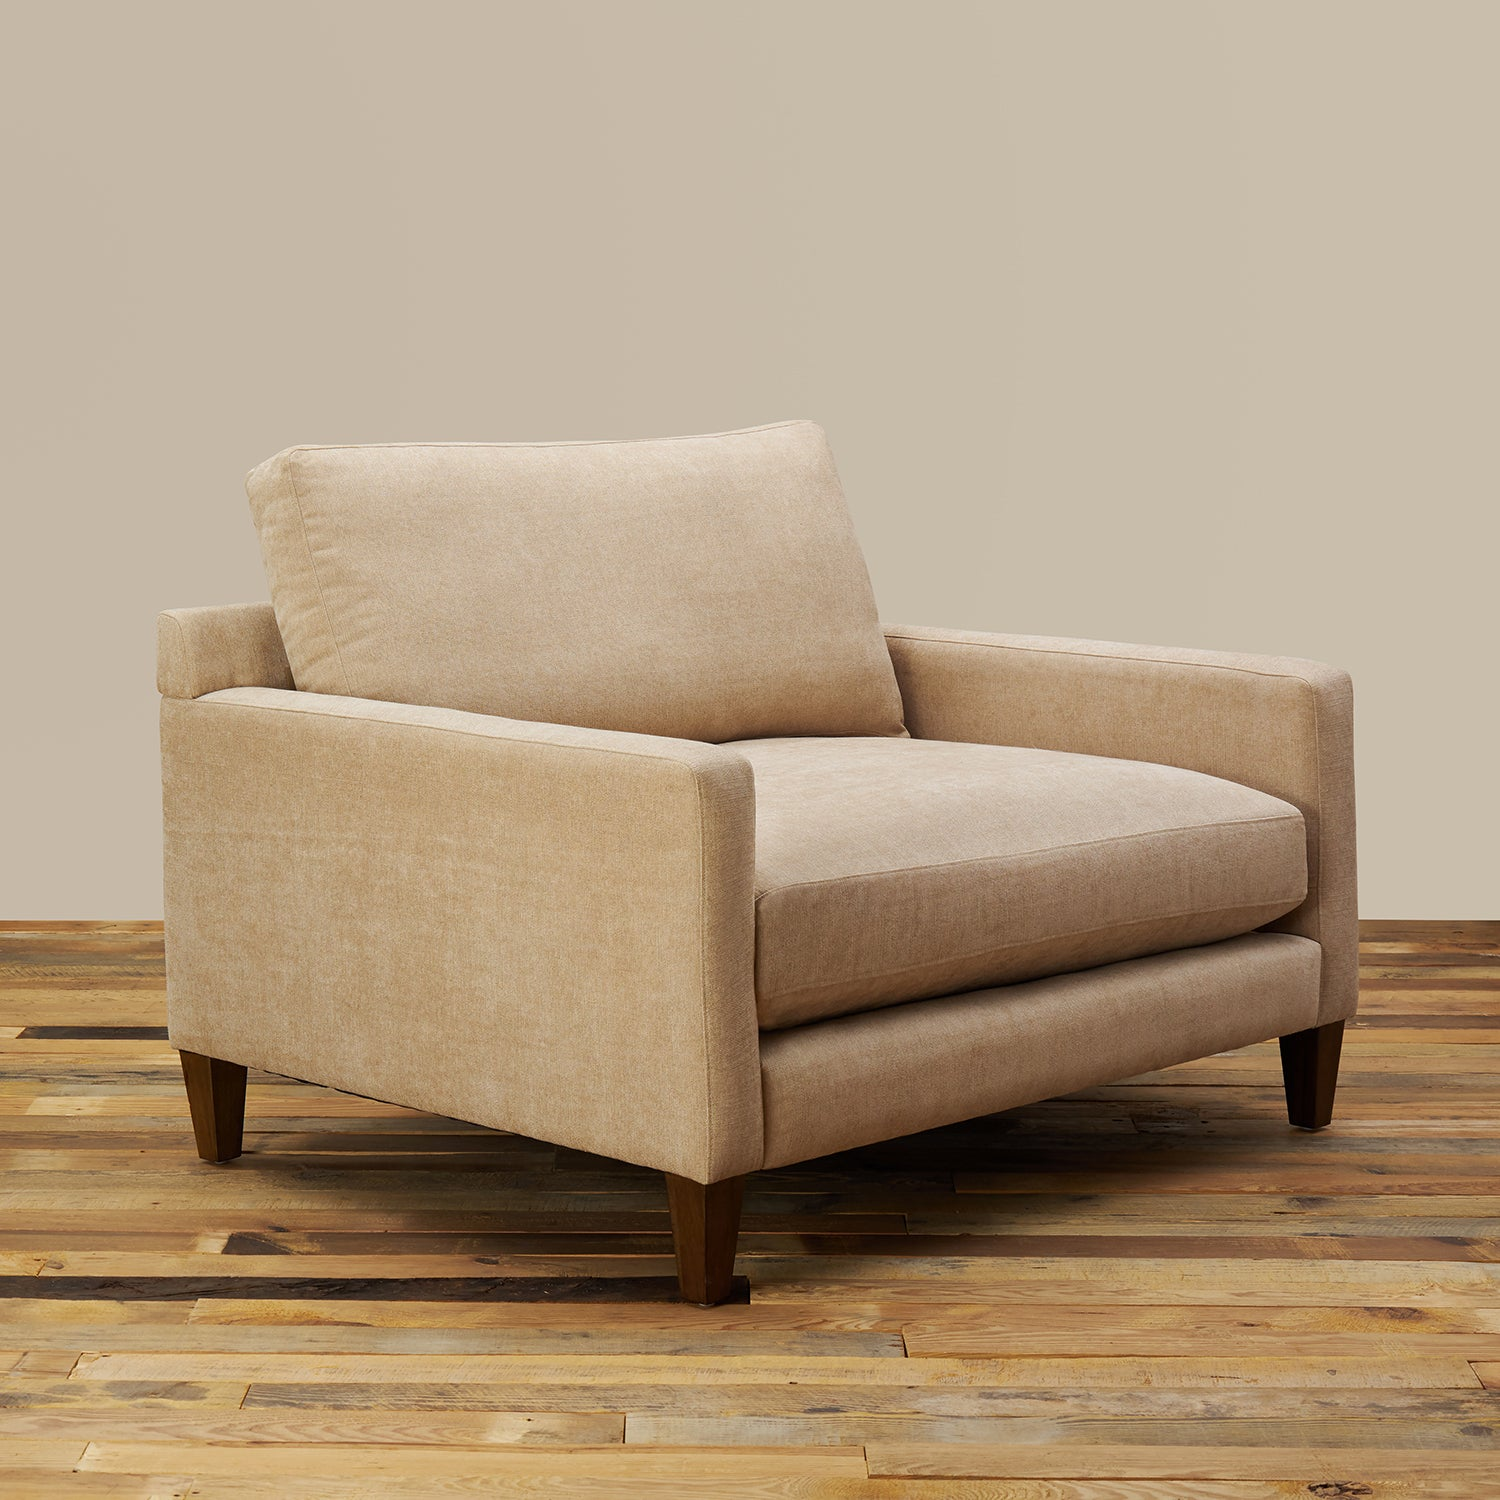 Miraculous Romo Oversized Lounge Chair With Ottoman Gmtry Best Dining Table And Chair Ideas Images Gmtryco